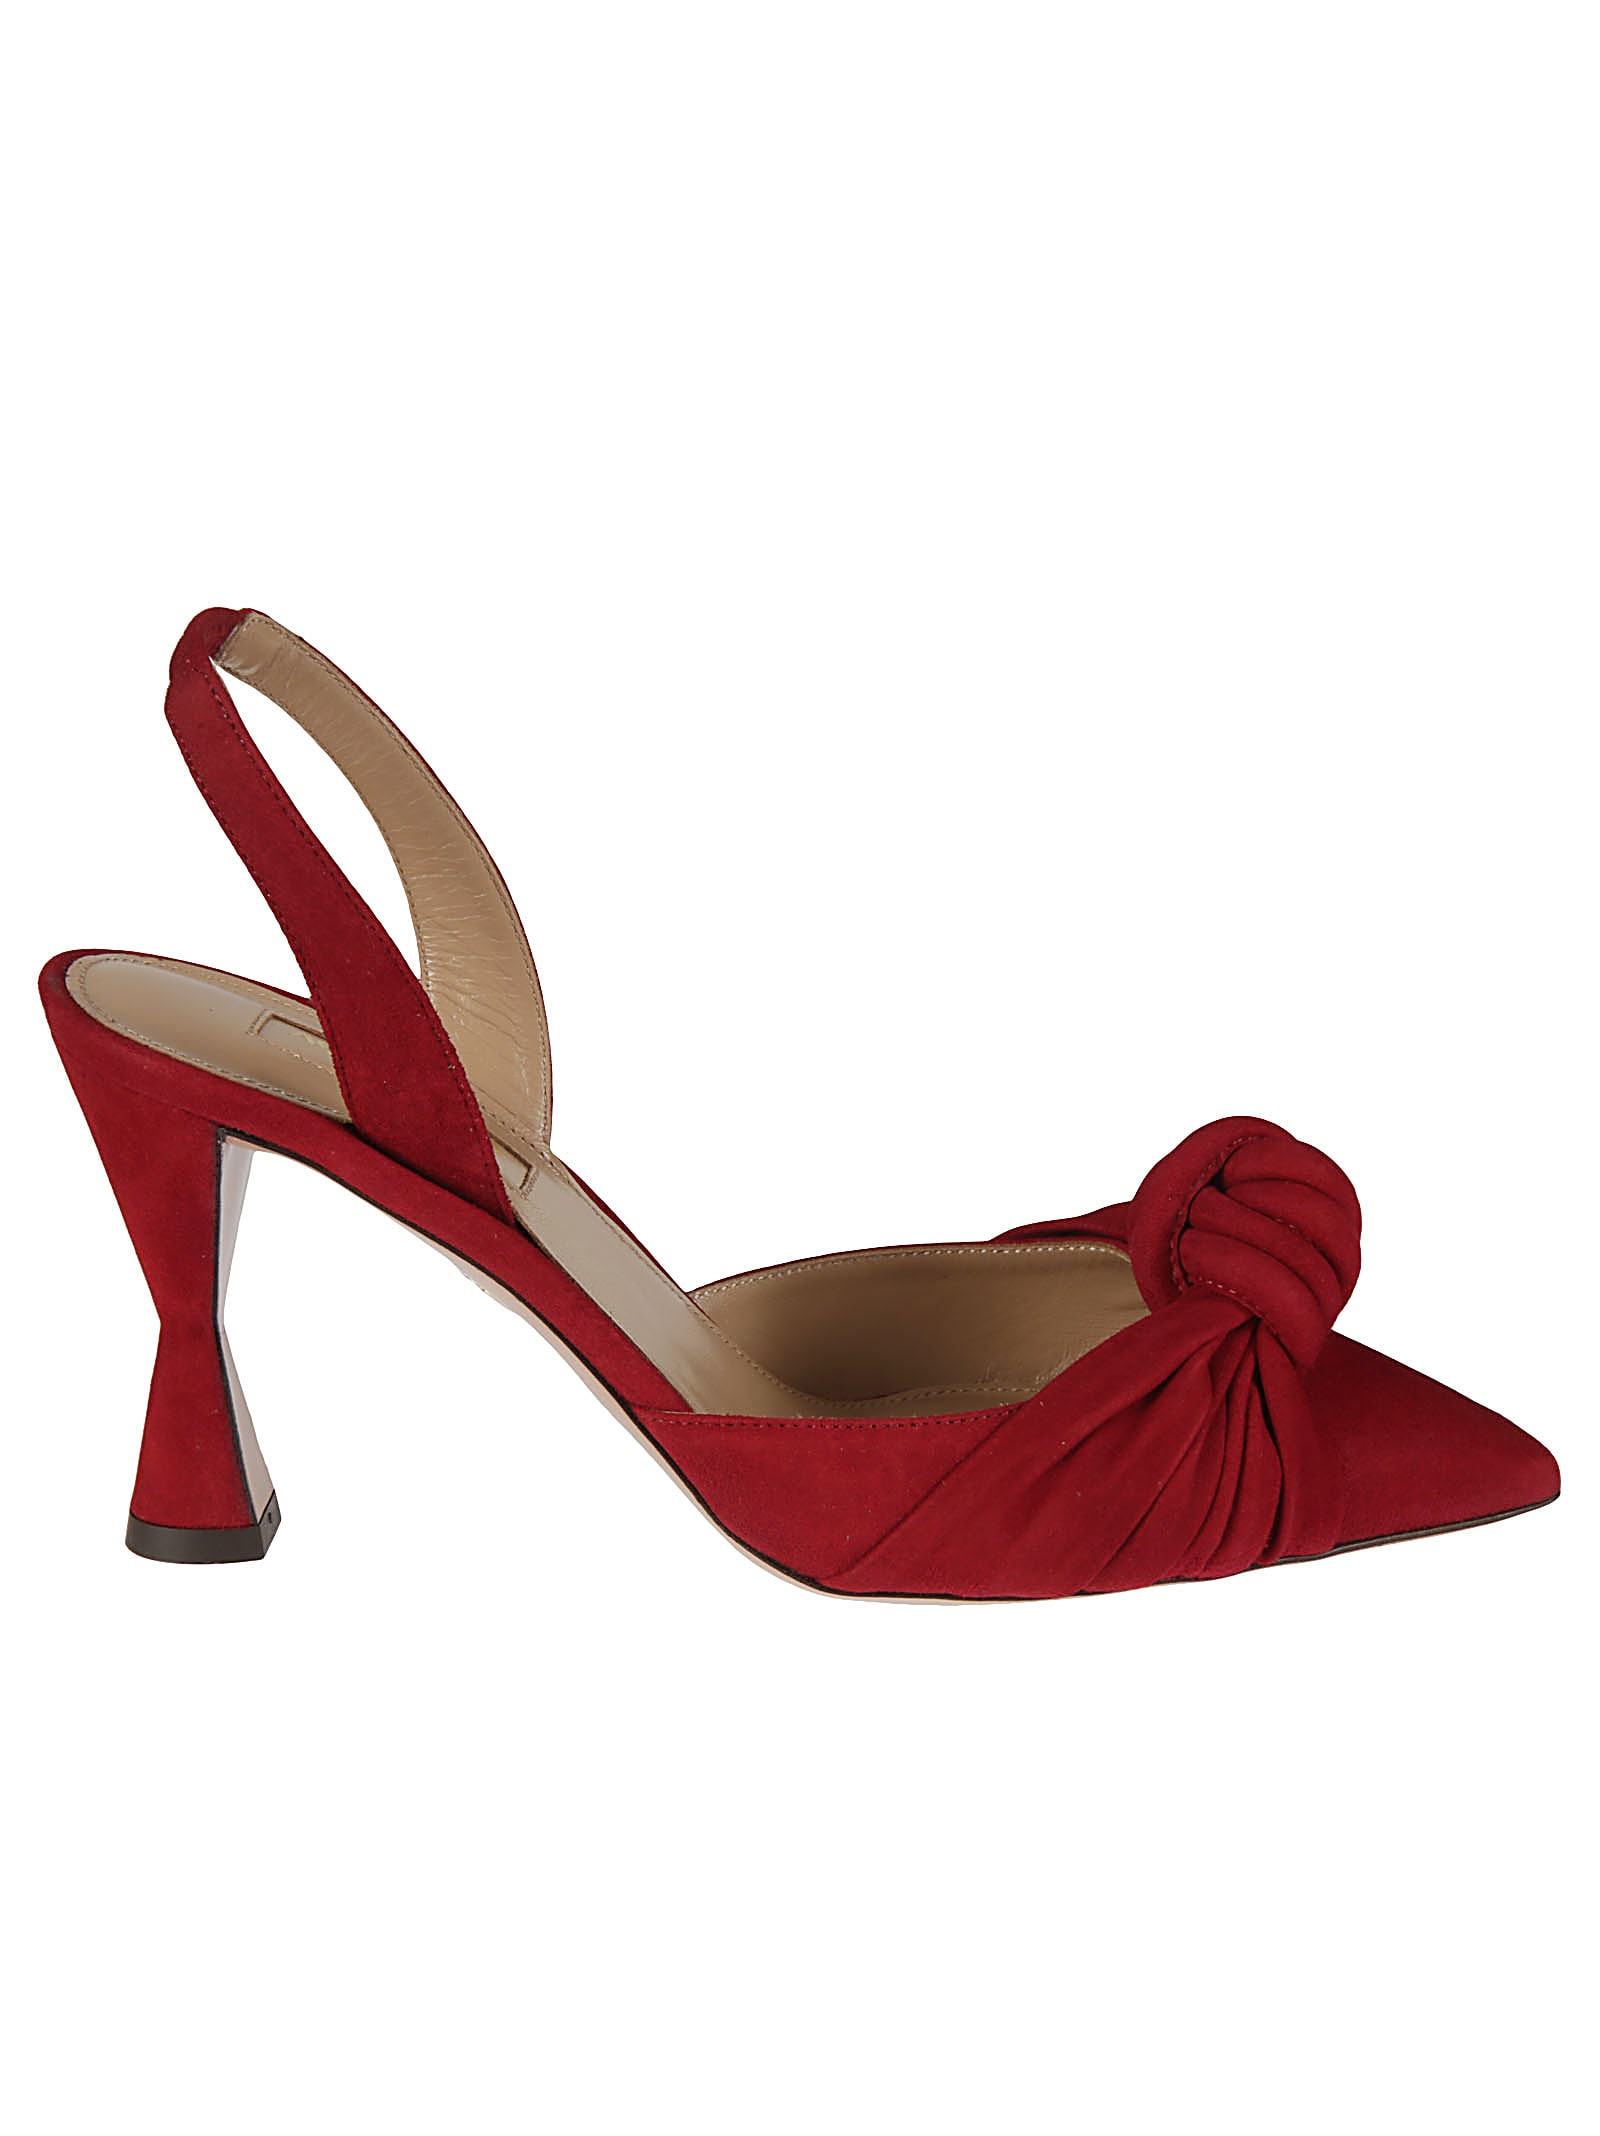 AQUAZZURA KIKI SLING PUMPS